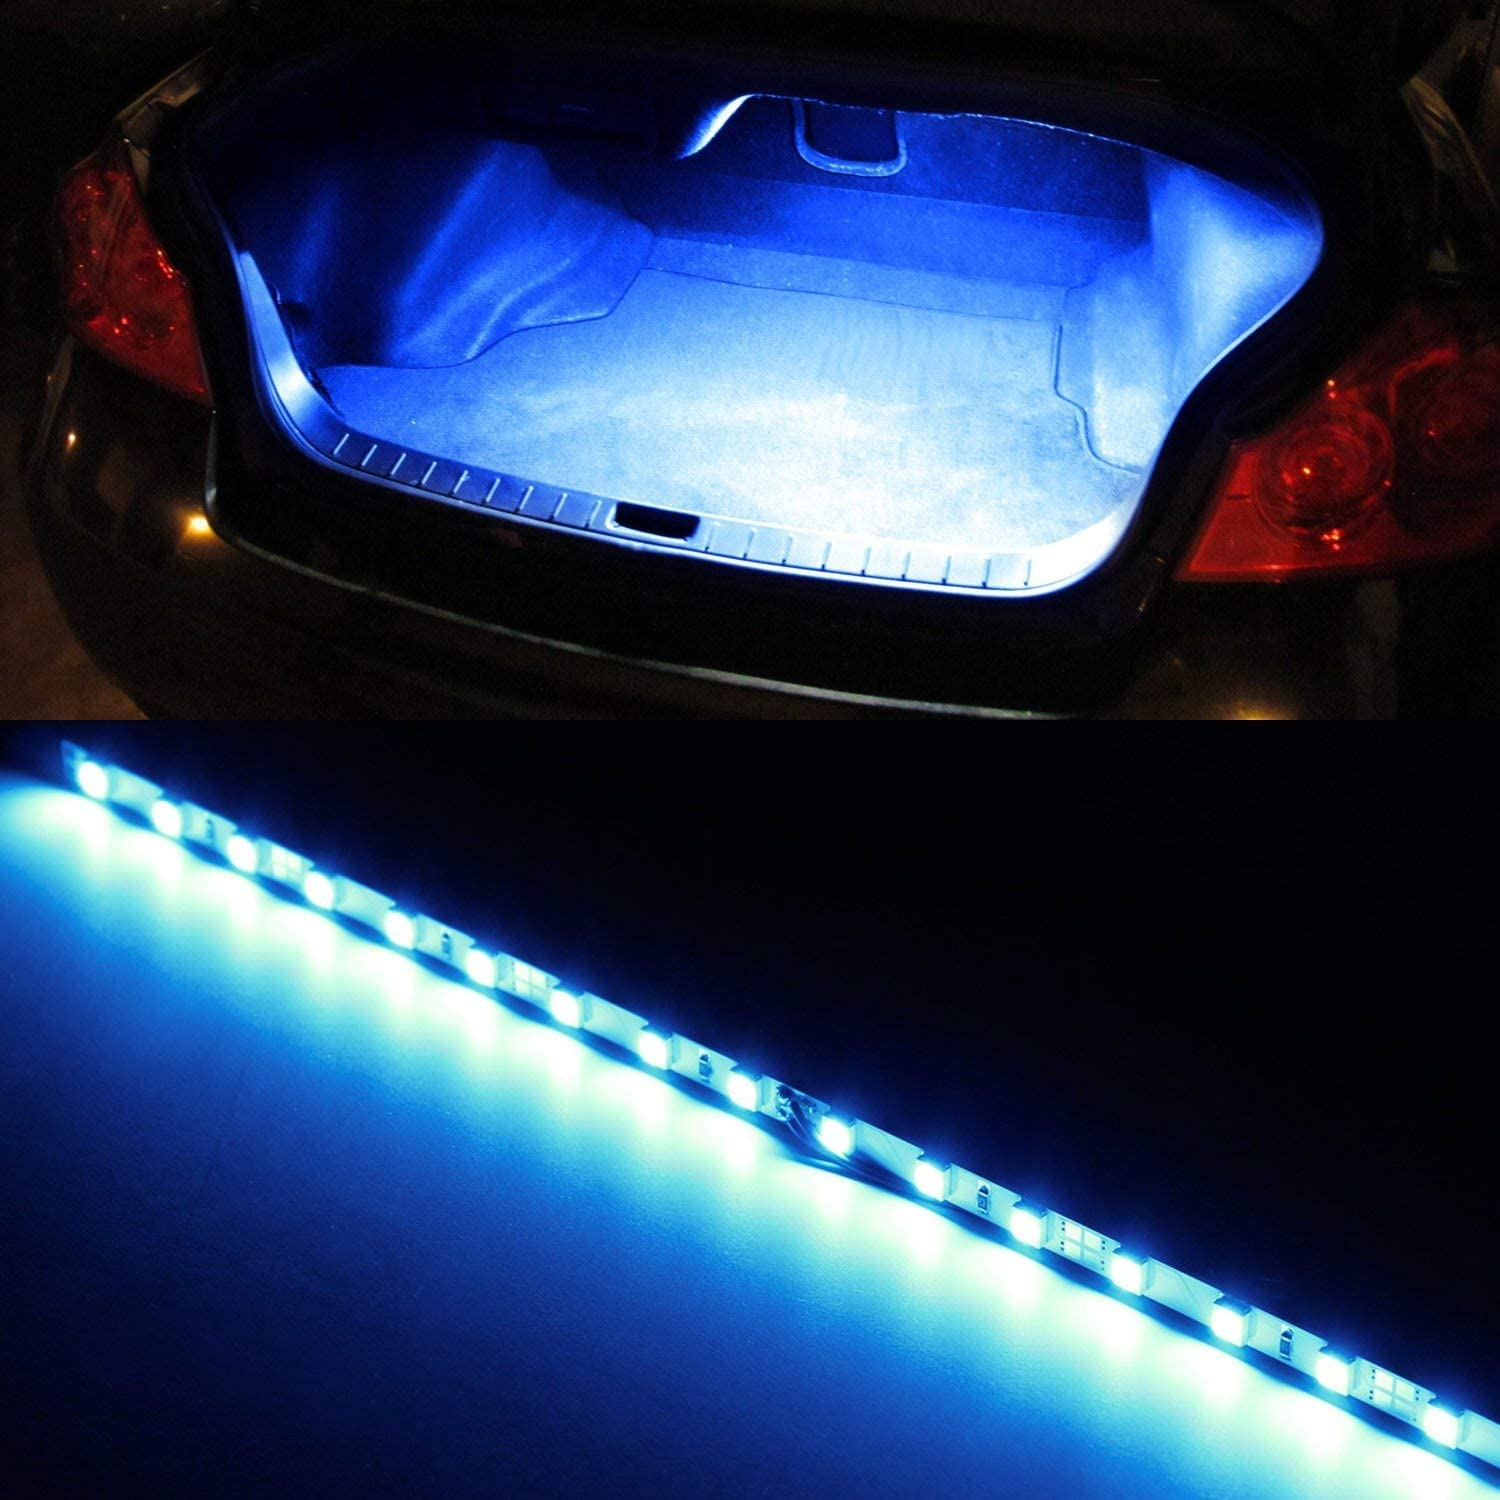 iJDMTOY (1) 18-SMD-5050 LED Strip Light Compatible With Car Trunk Cargo Area or Interior Illumination, Ultra Blue